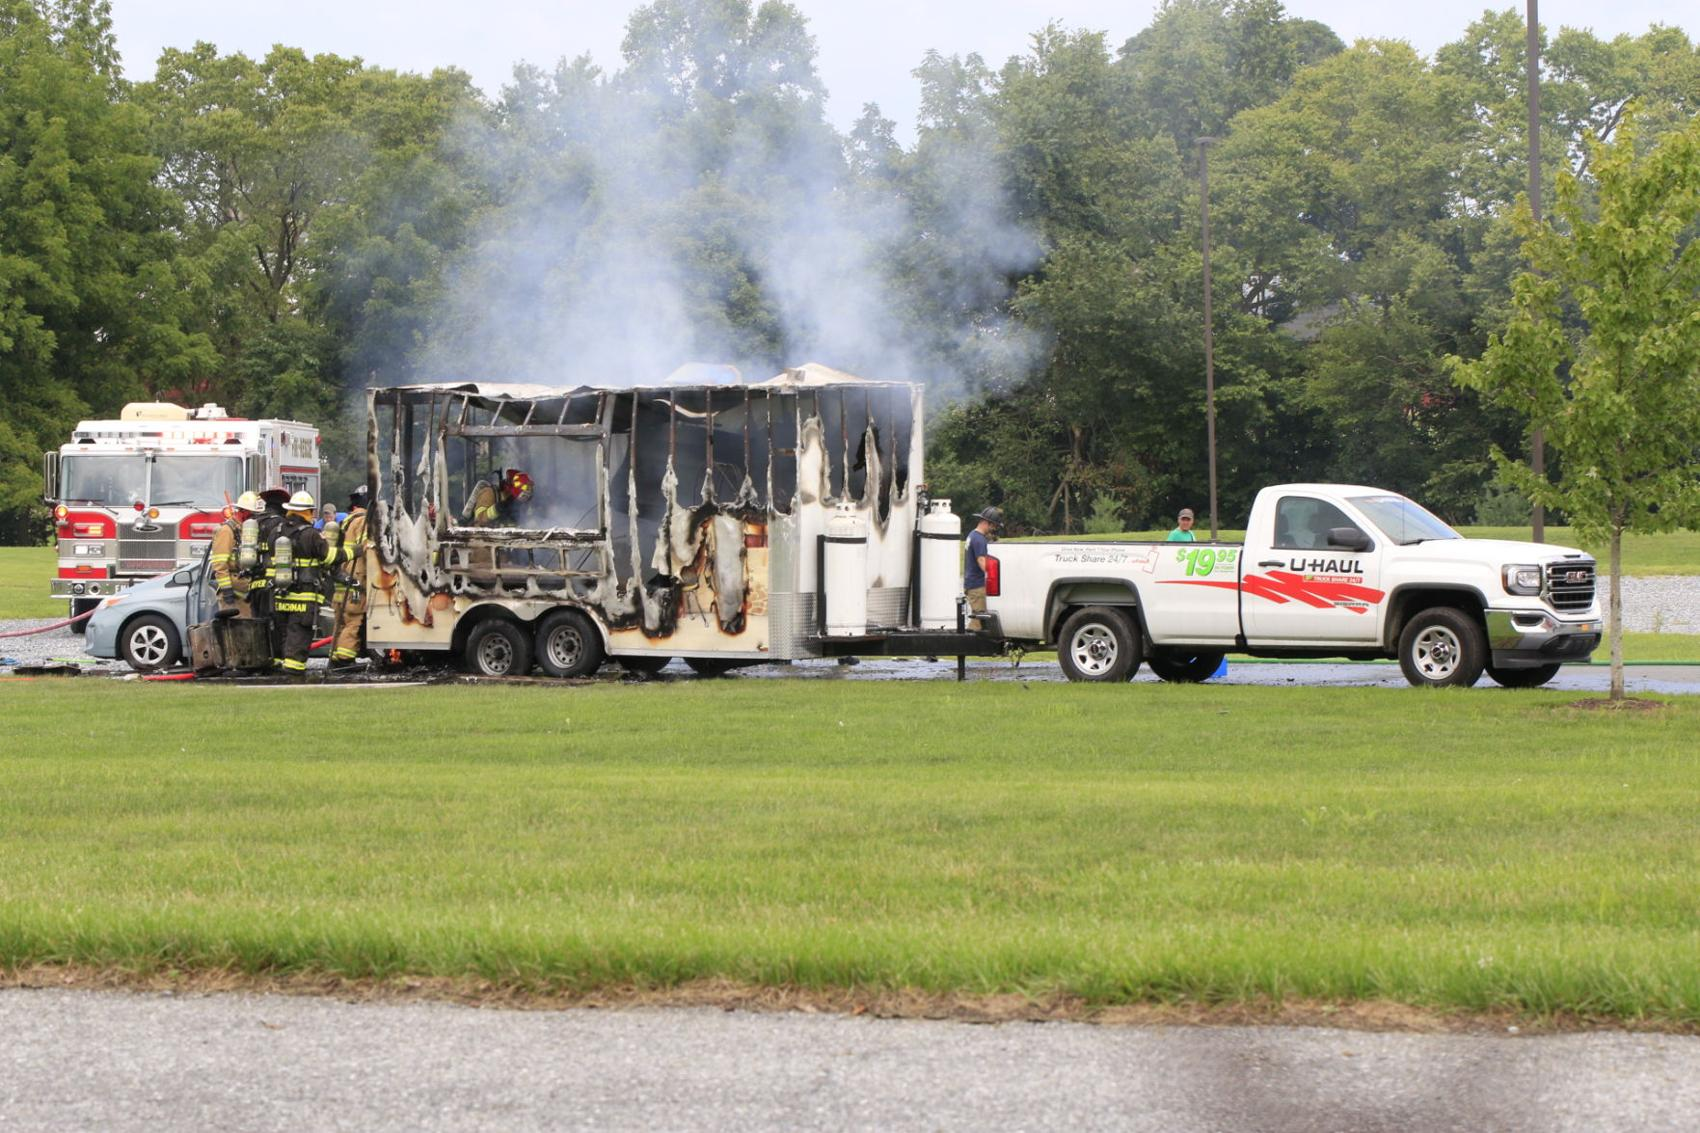 Food truck explodes in Pennsylvania, two reported with severe burns